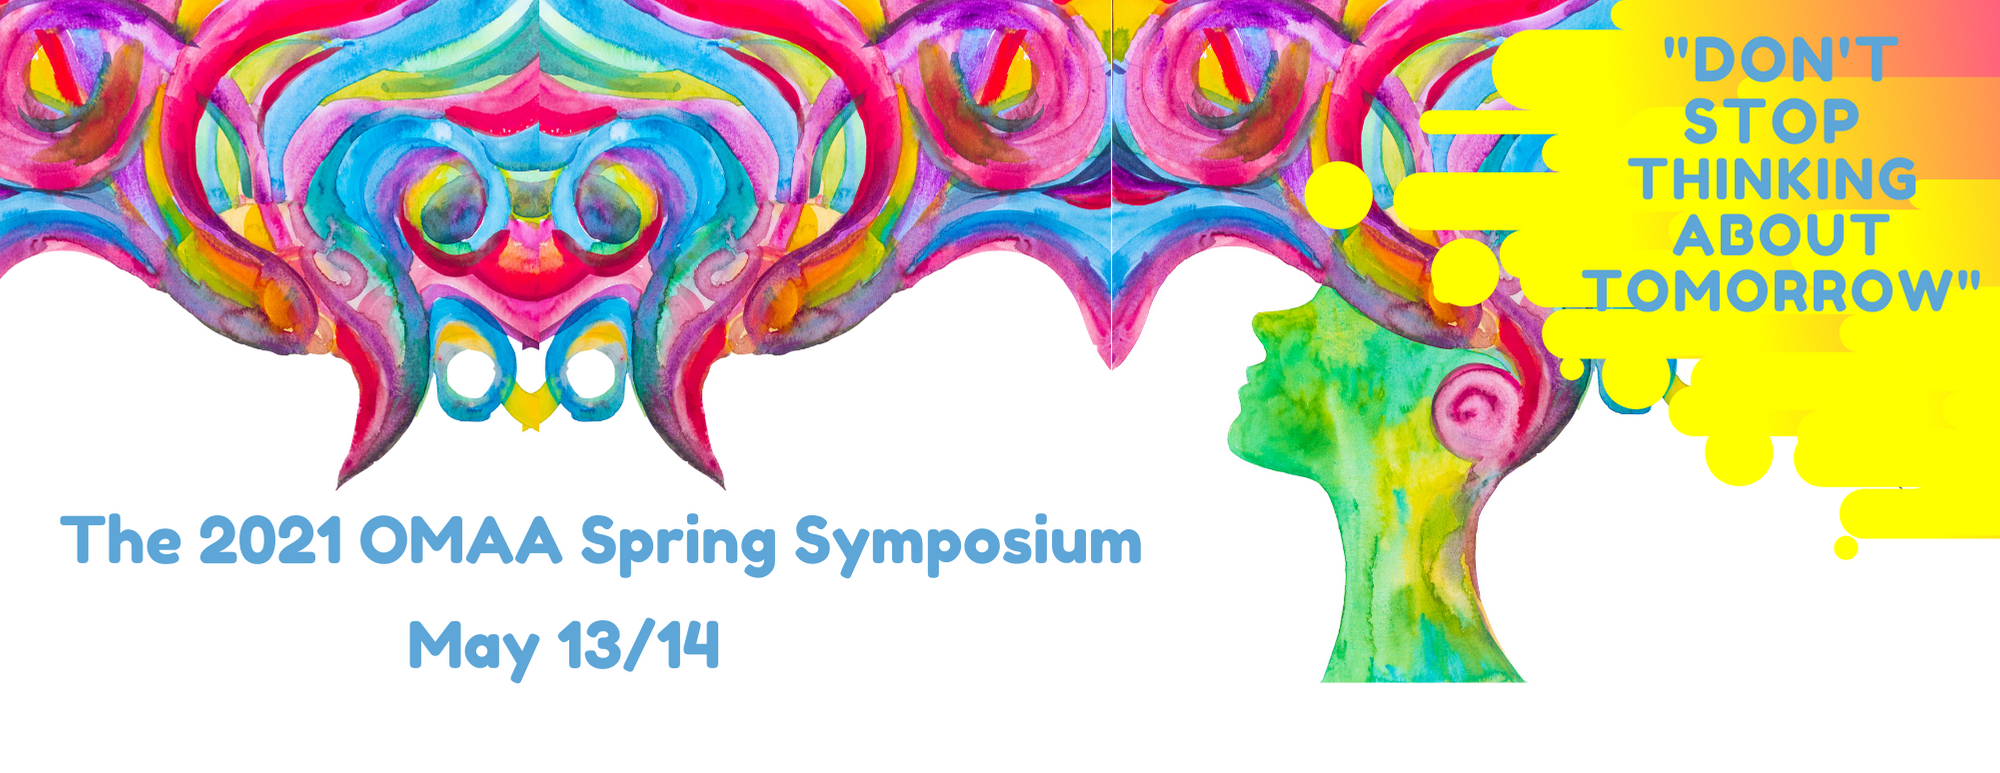 2021 OMAA Spring Symposium Banner